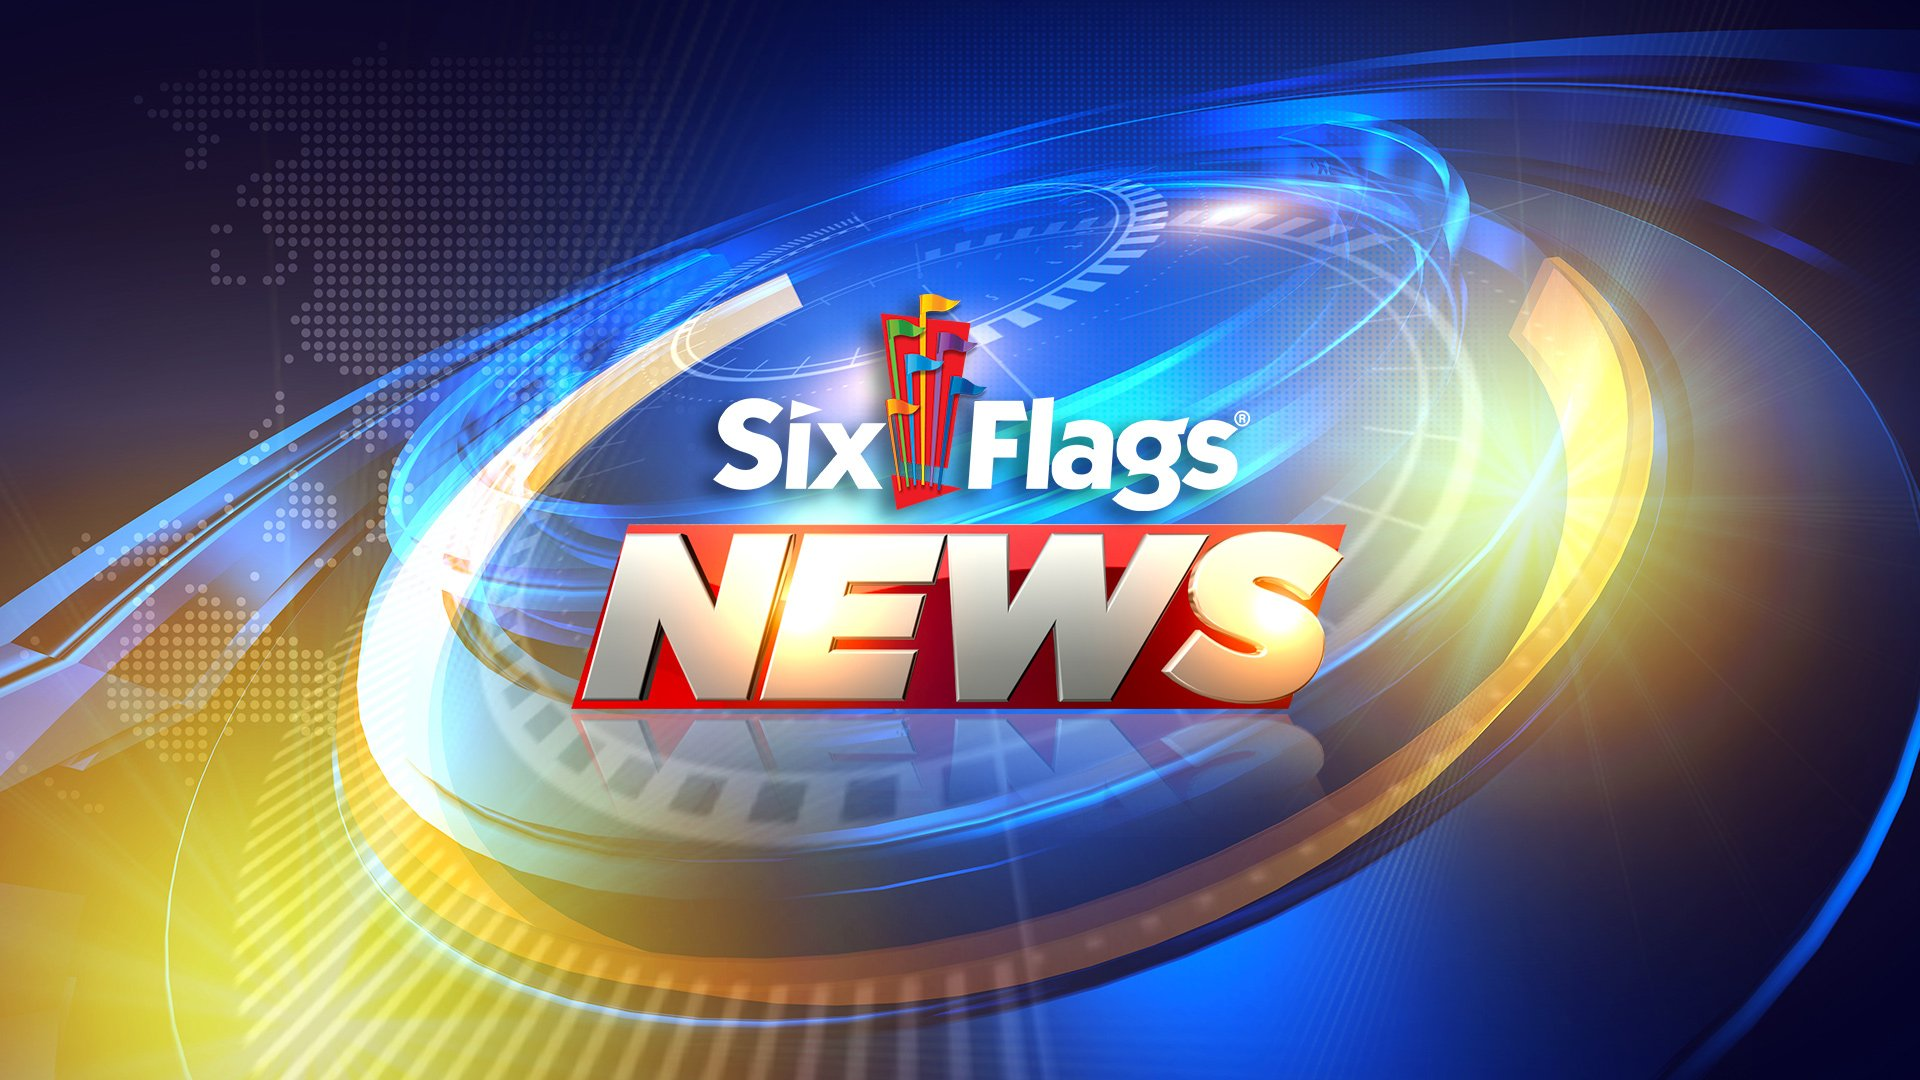 Six Flags news graphic